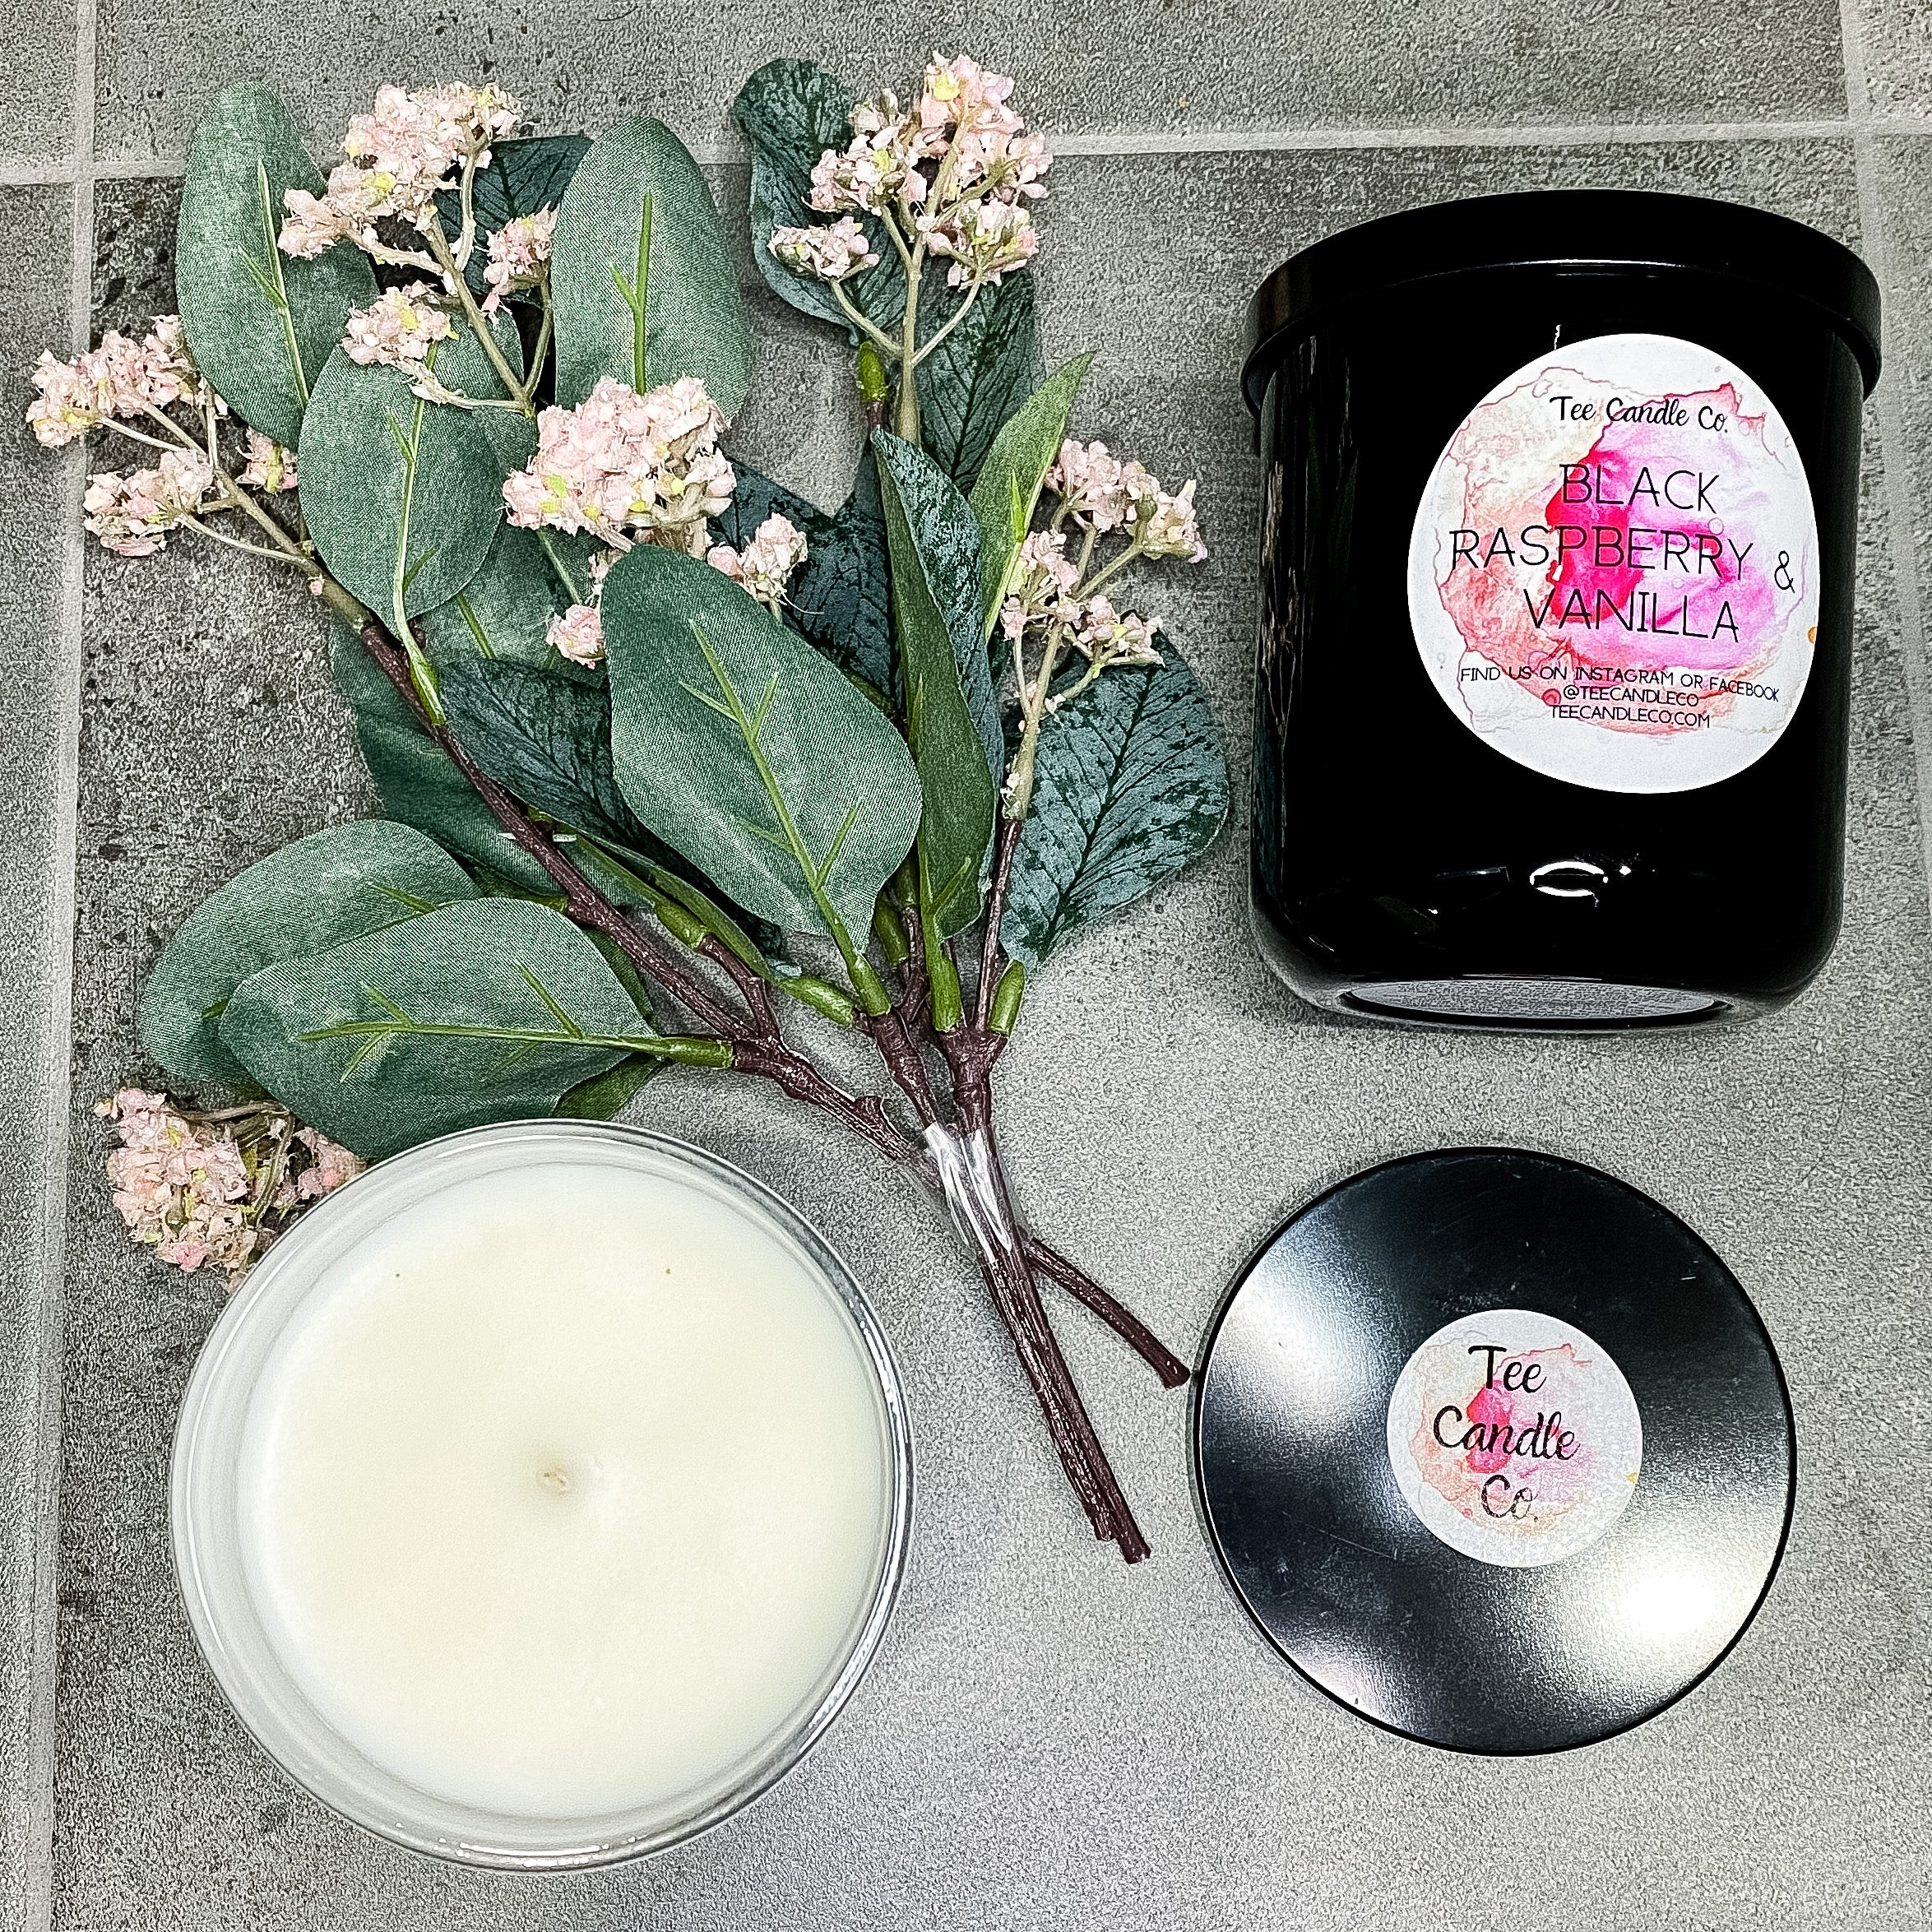 Black Raspberry & Vanilla | Soy Candle